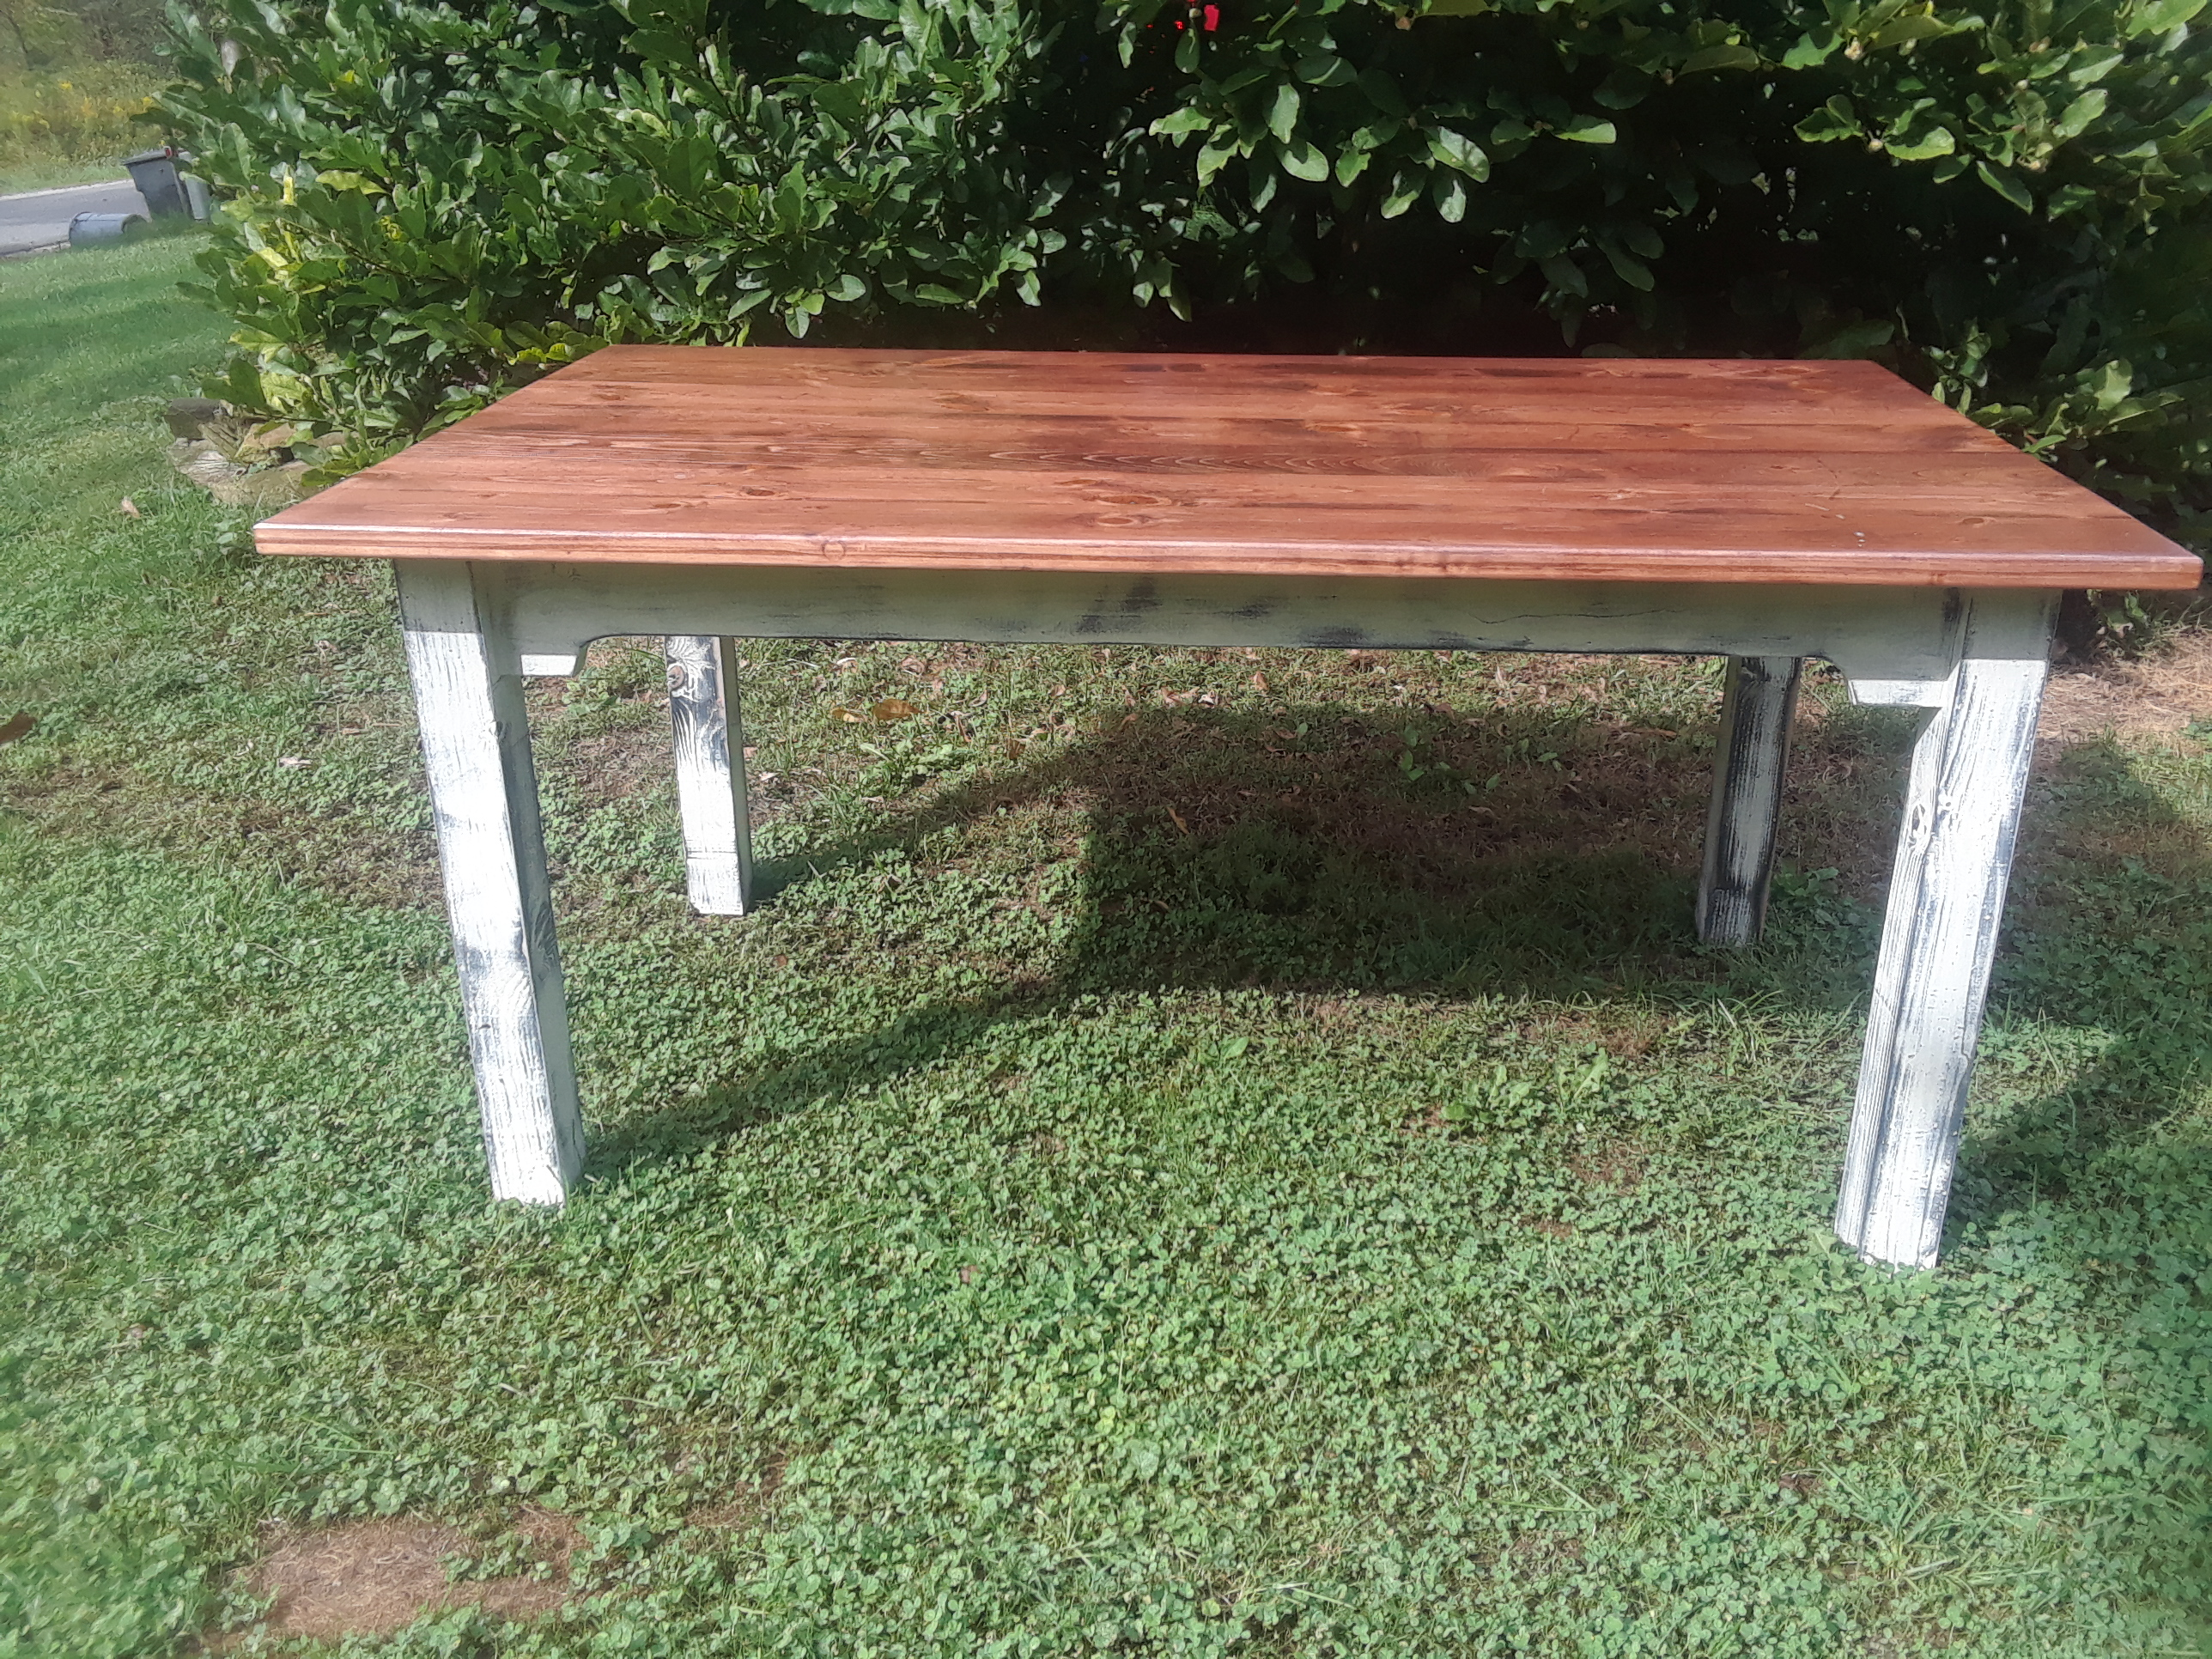 Astonishing Gallery 2 8 Rustic Custom Tables And Furniture Alphanode Cool Chair Designs And Ideas Alphanodeonline